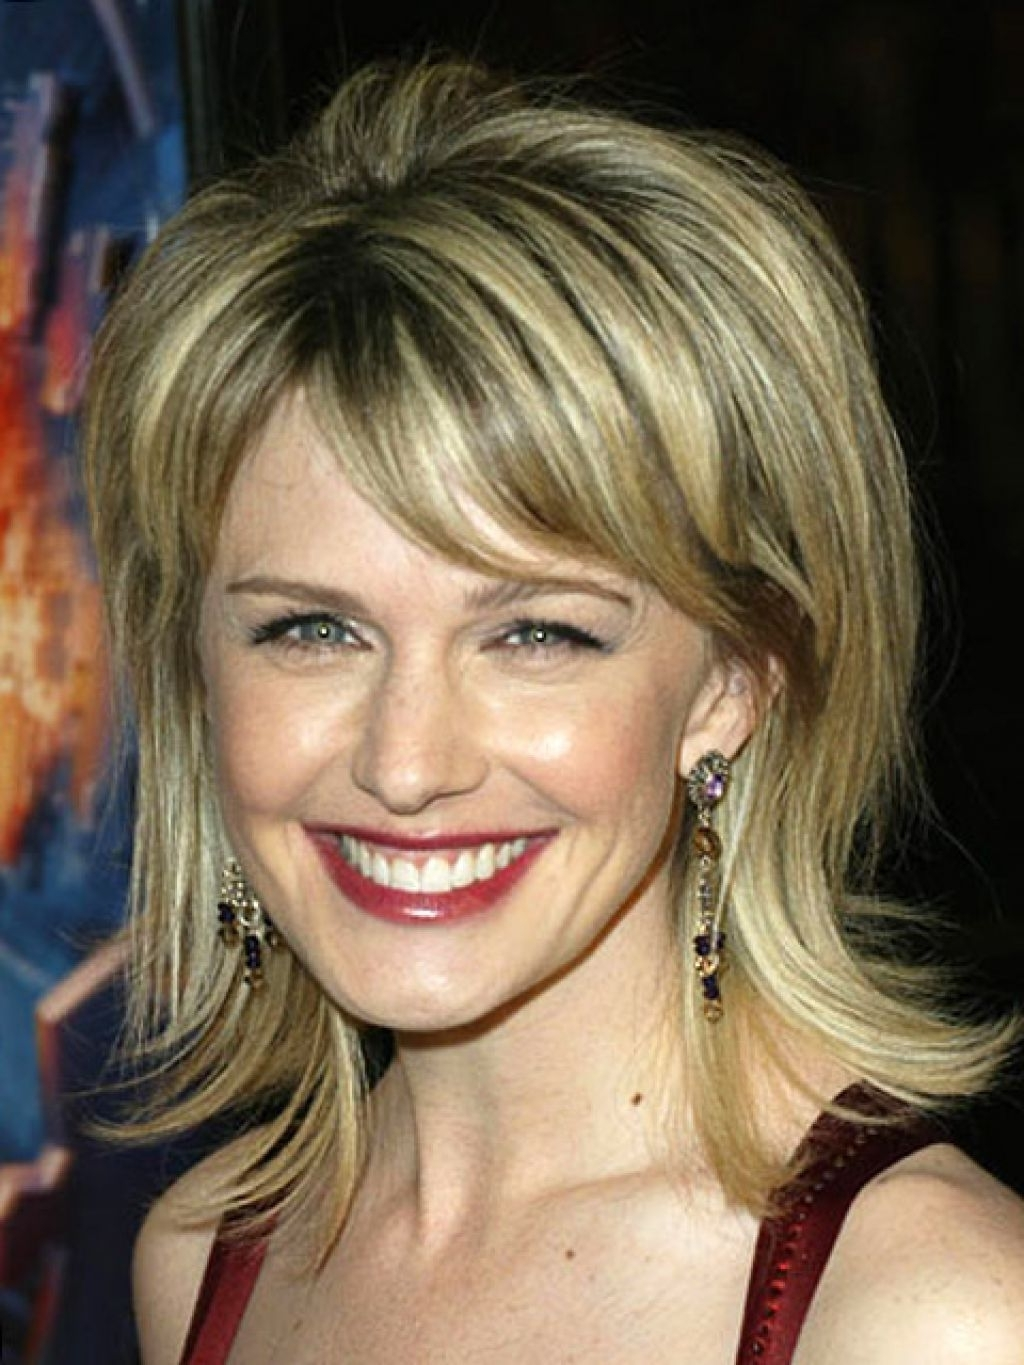 Short Shag Hairstyles Intended For Famous Short To Medium Length Shaggy Hairstyles (View 2 of 15)